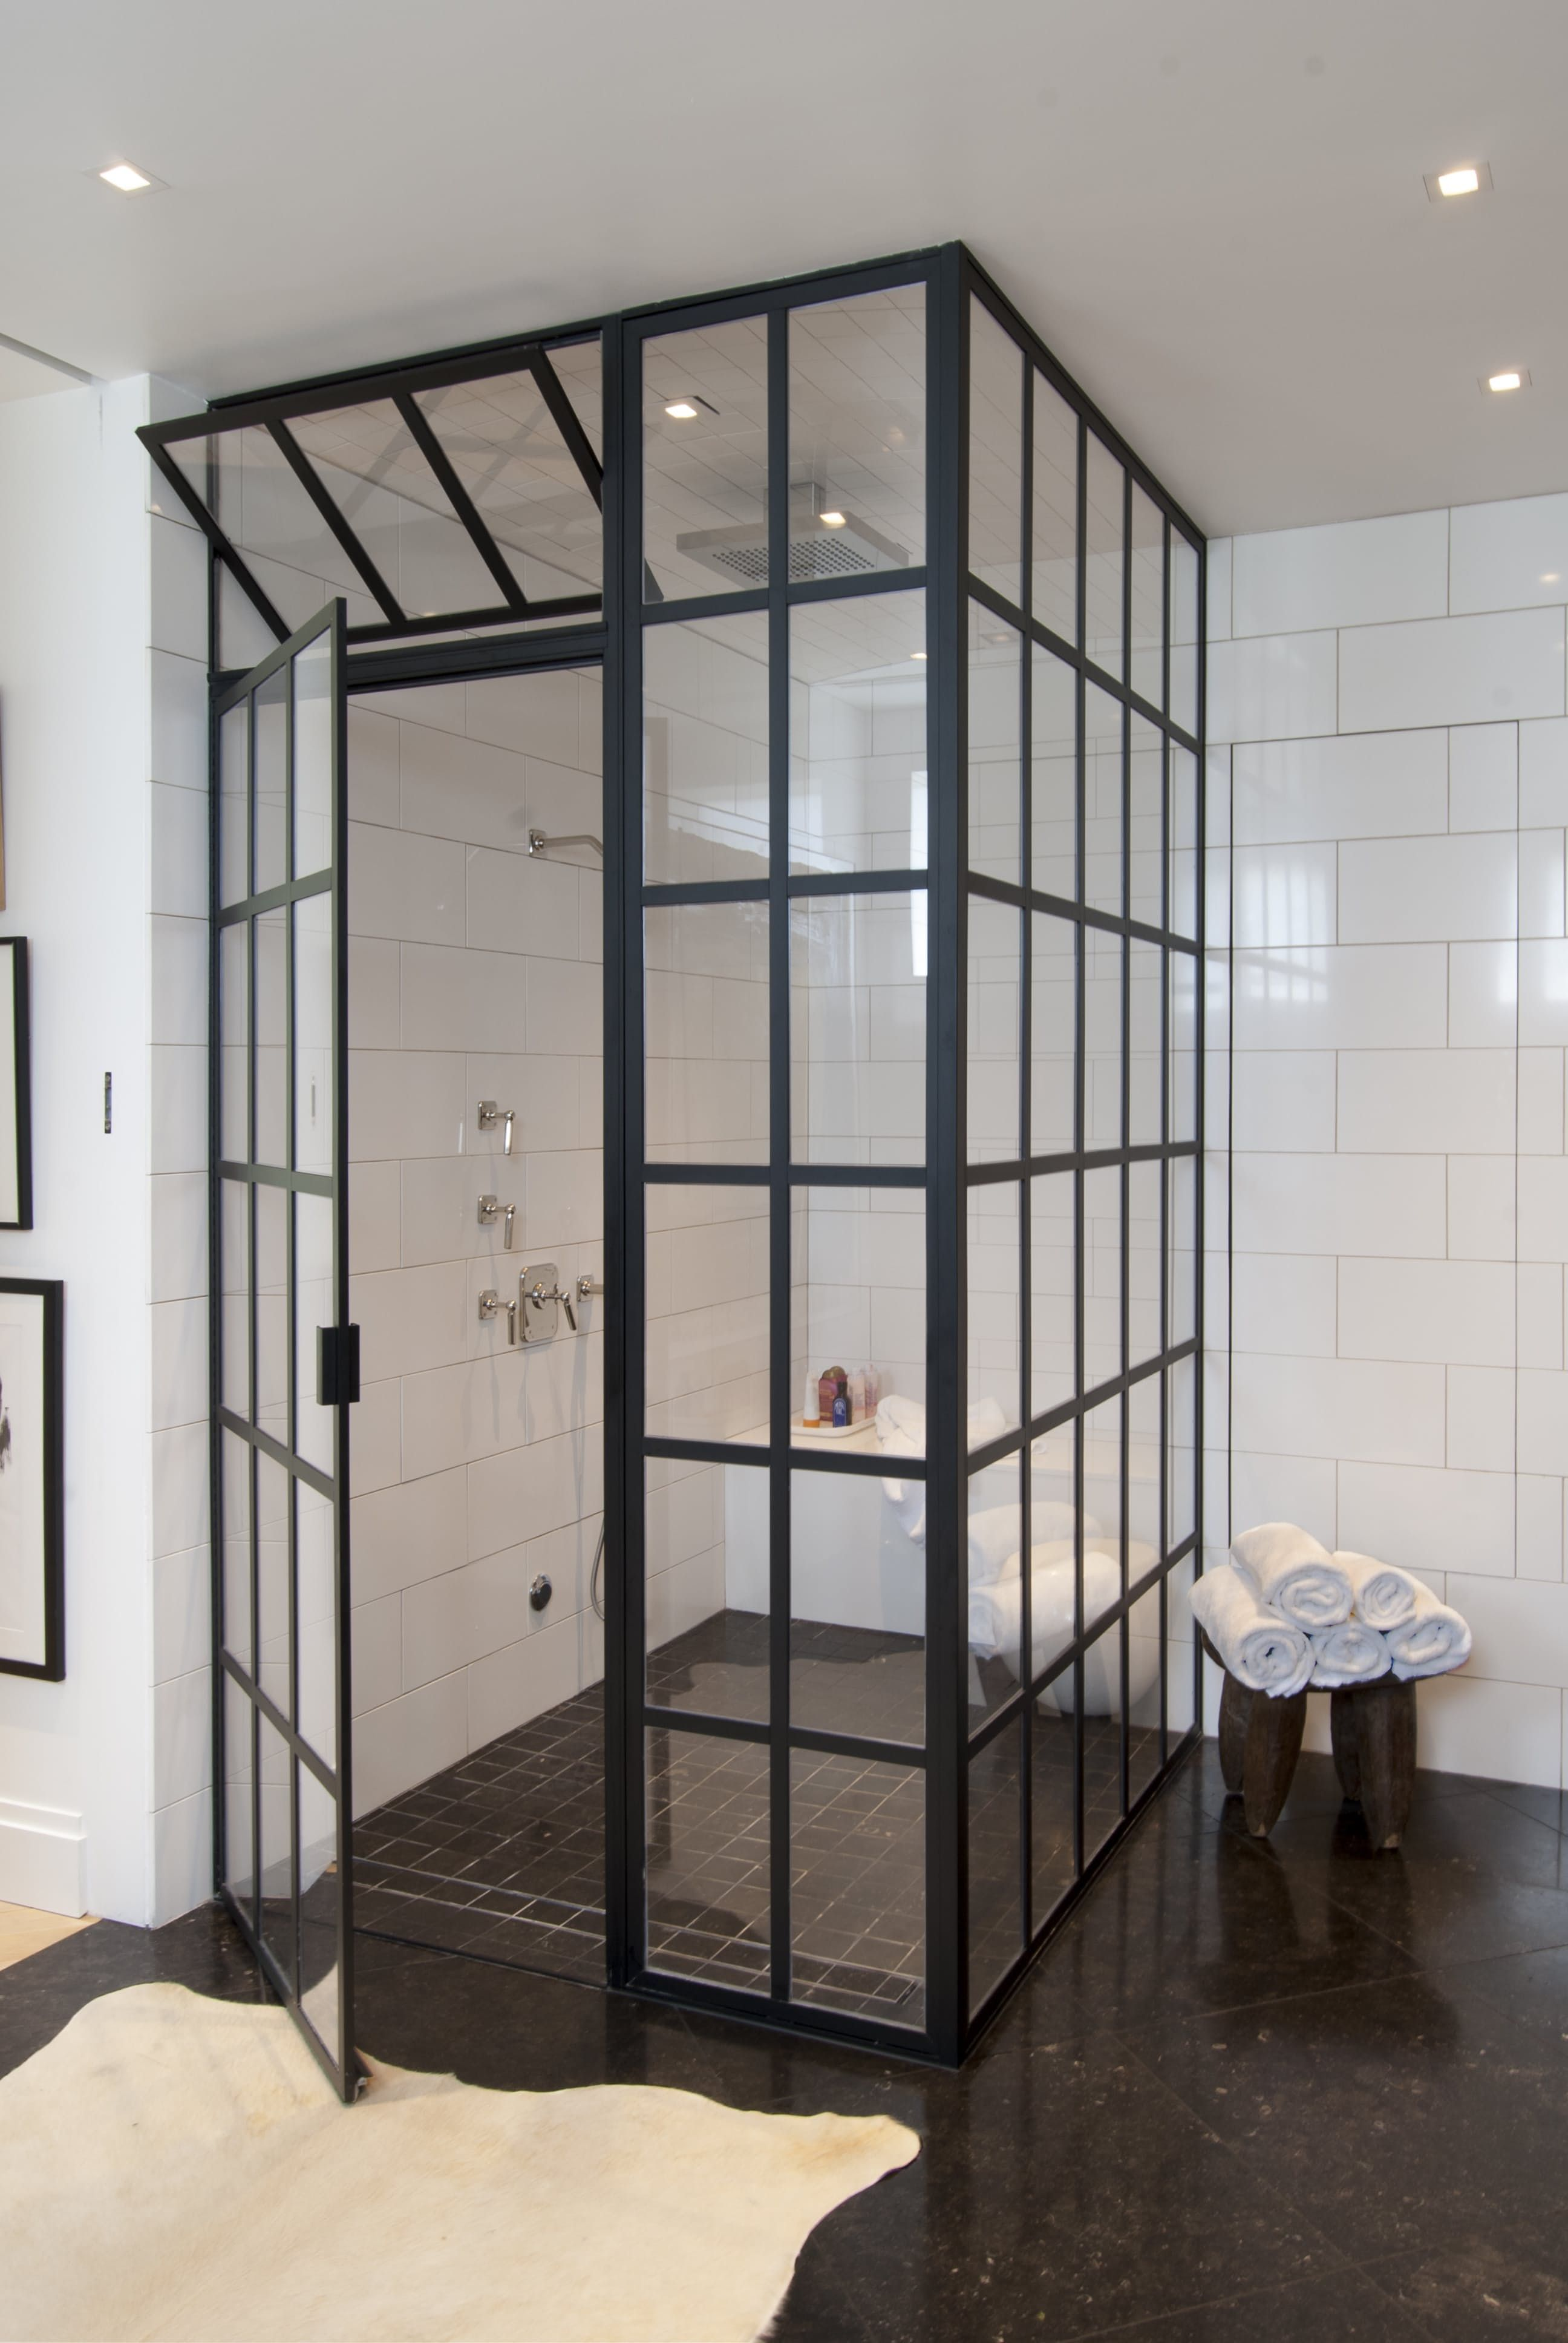 These Showers Are The Next Thing For Bathroom